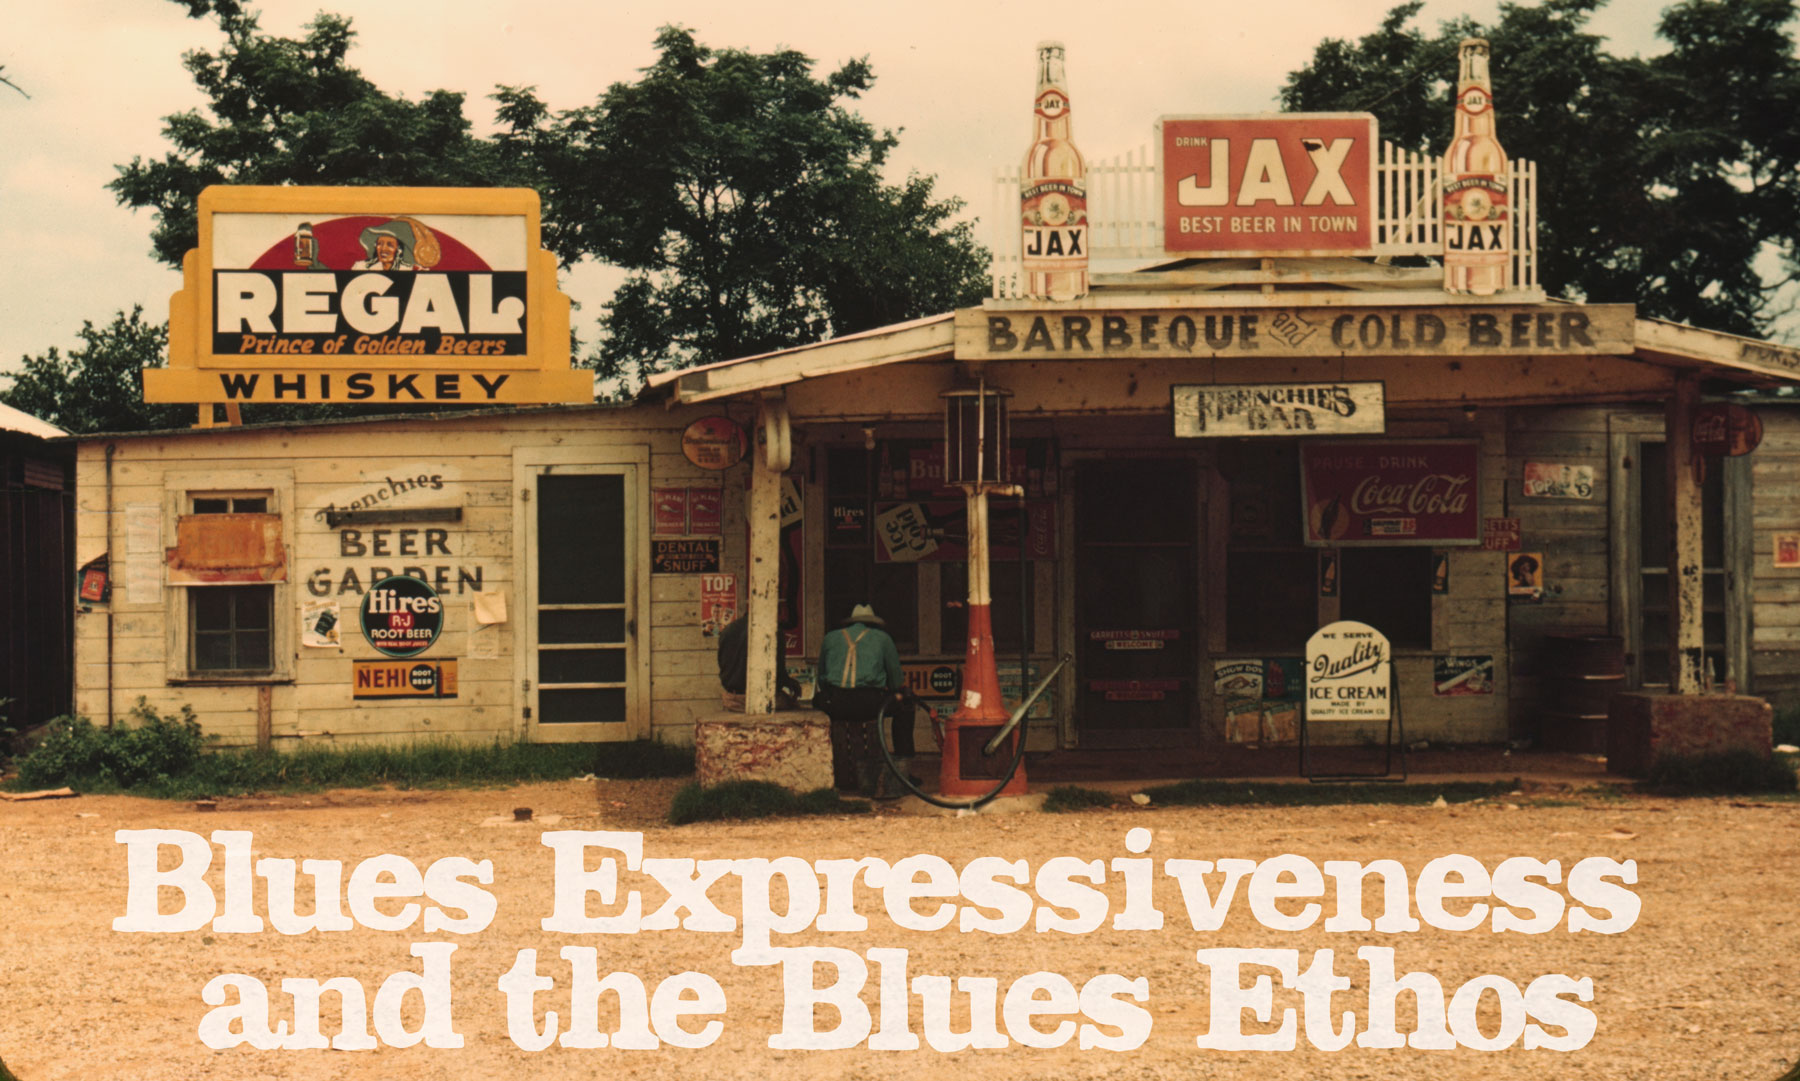 Blues Expressiveness and the Blues Ethos